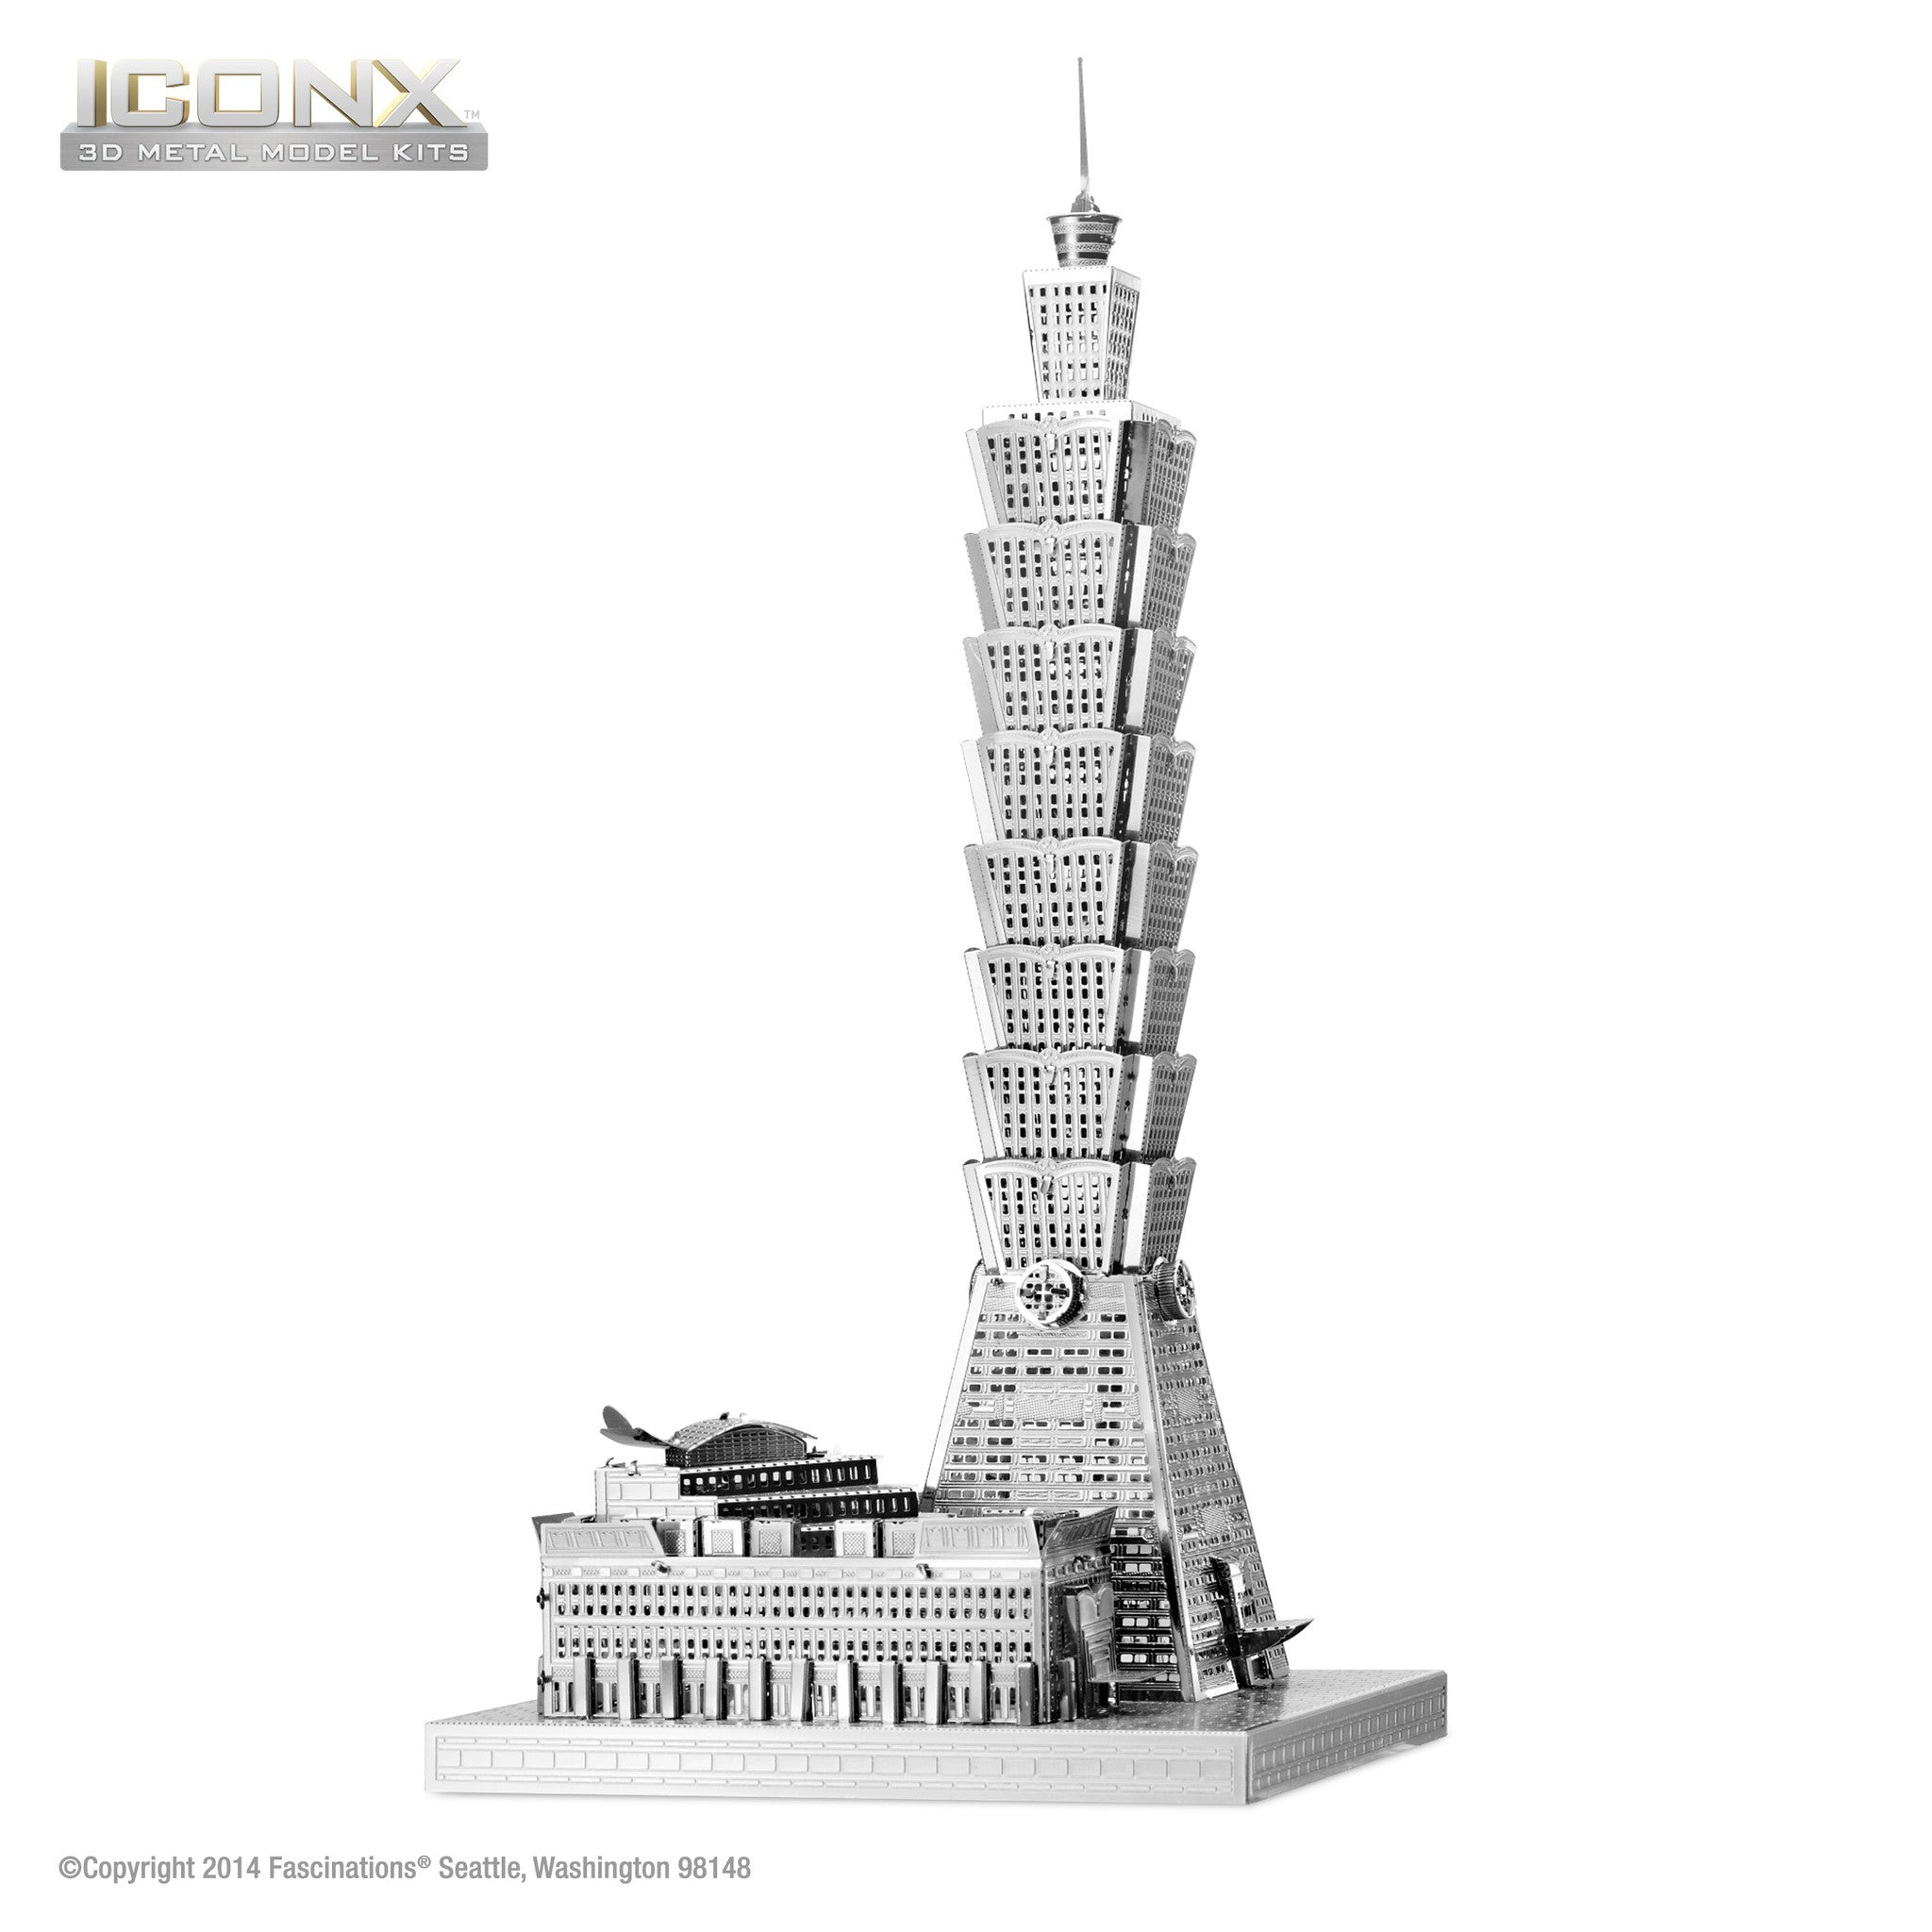 Fascinations Metal Earth 3D ICONX Laser Cut Model Taipei 101 Building